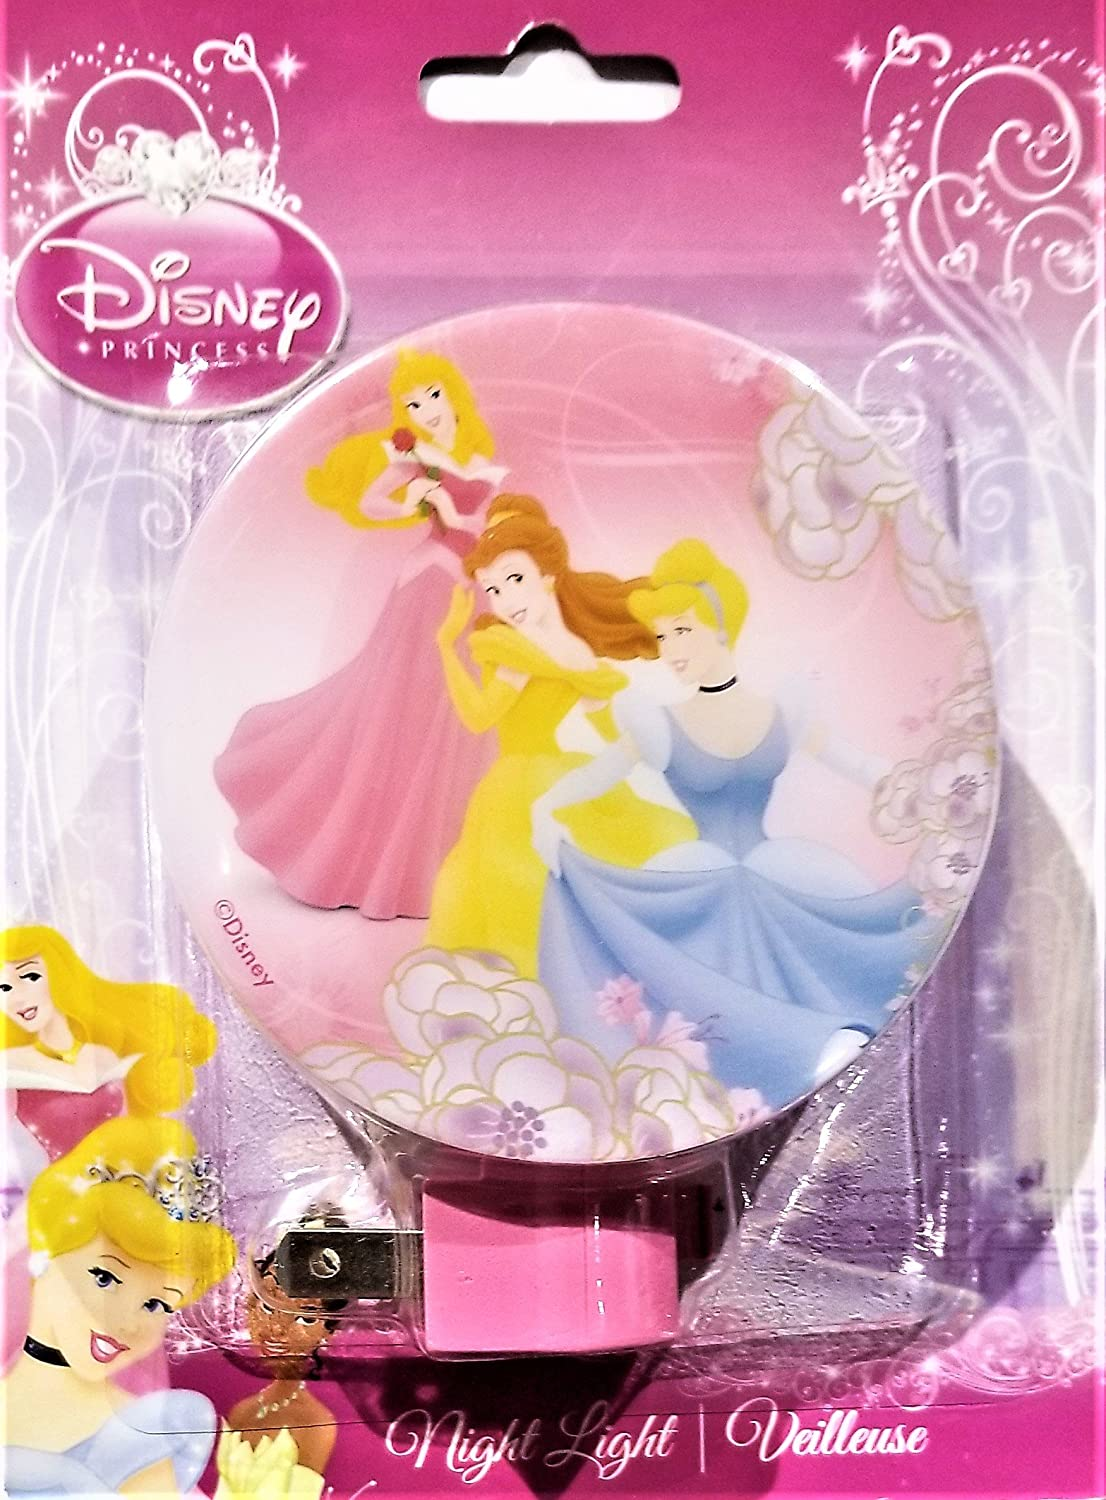 Amazon.com: Disney Princess – Luz nocturna: Baby